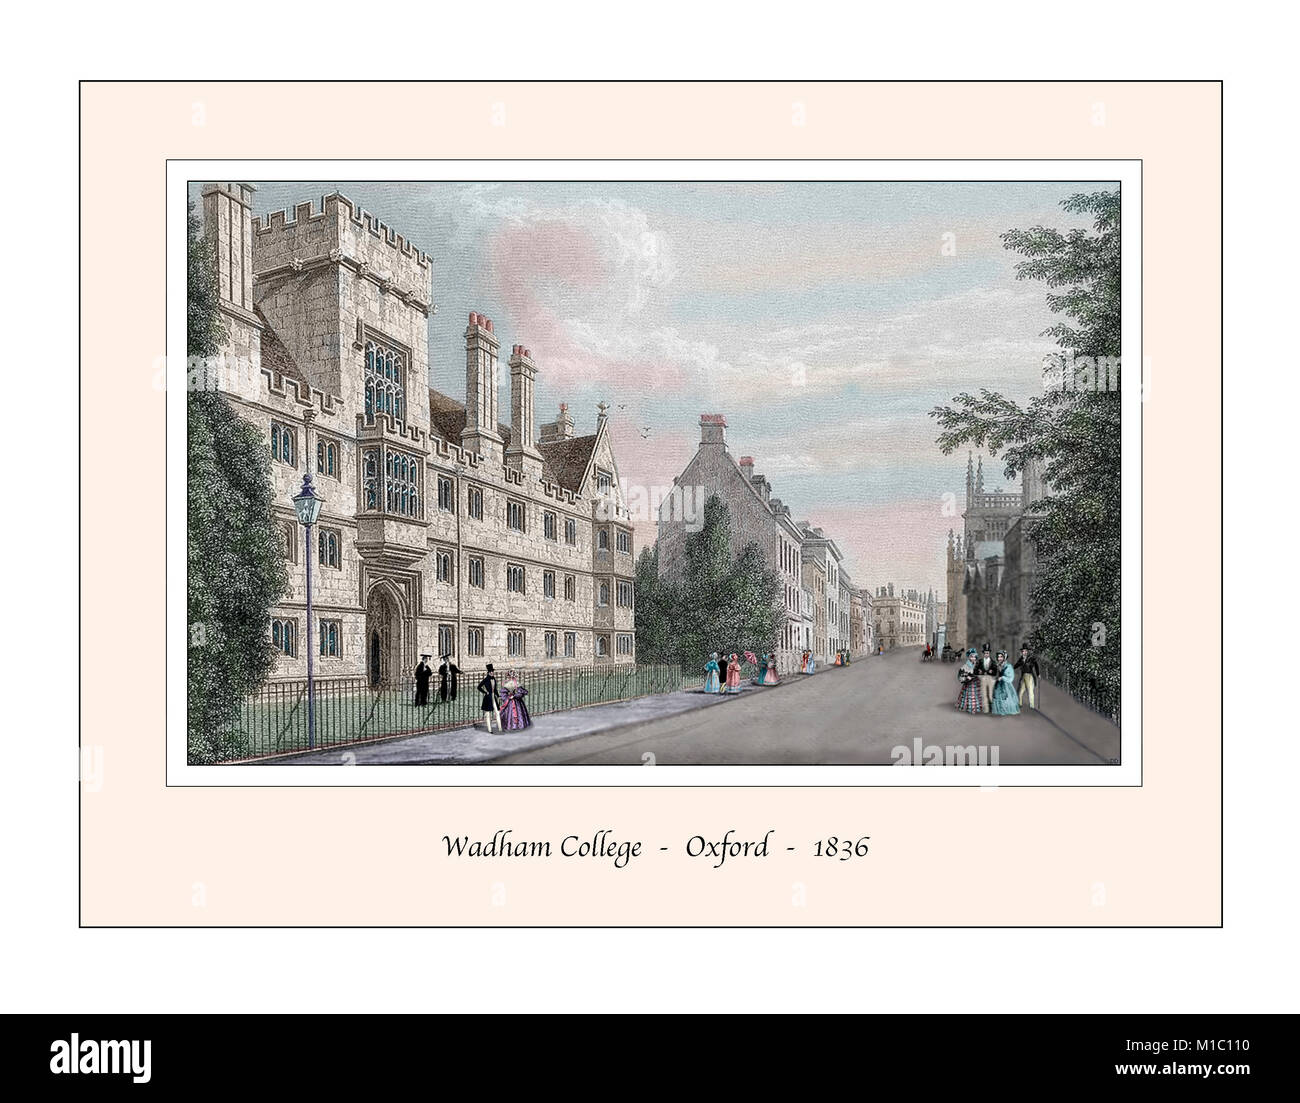 Wadham College Oxford Original Design based on a 19th century Engraving - Stock Image